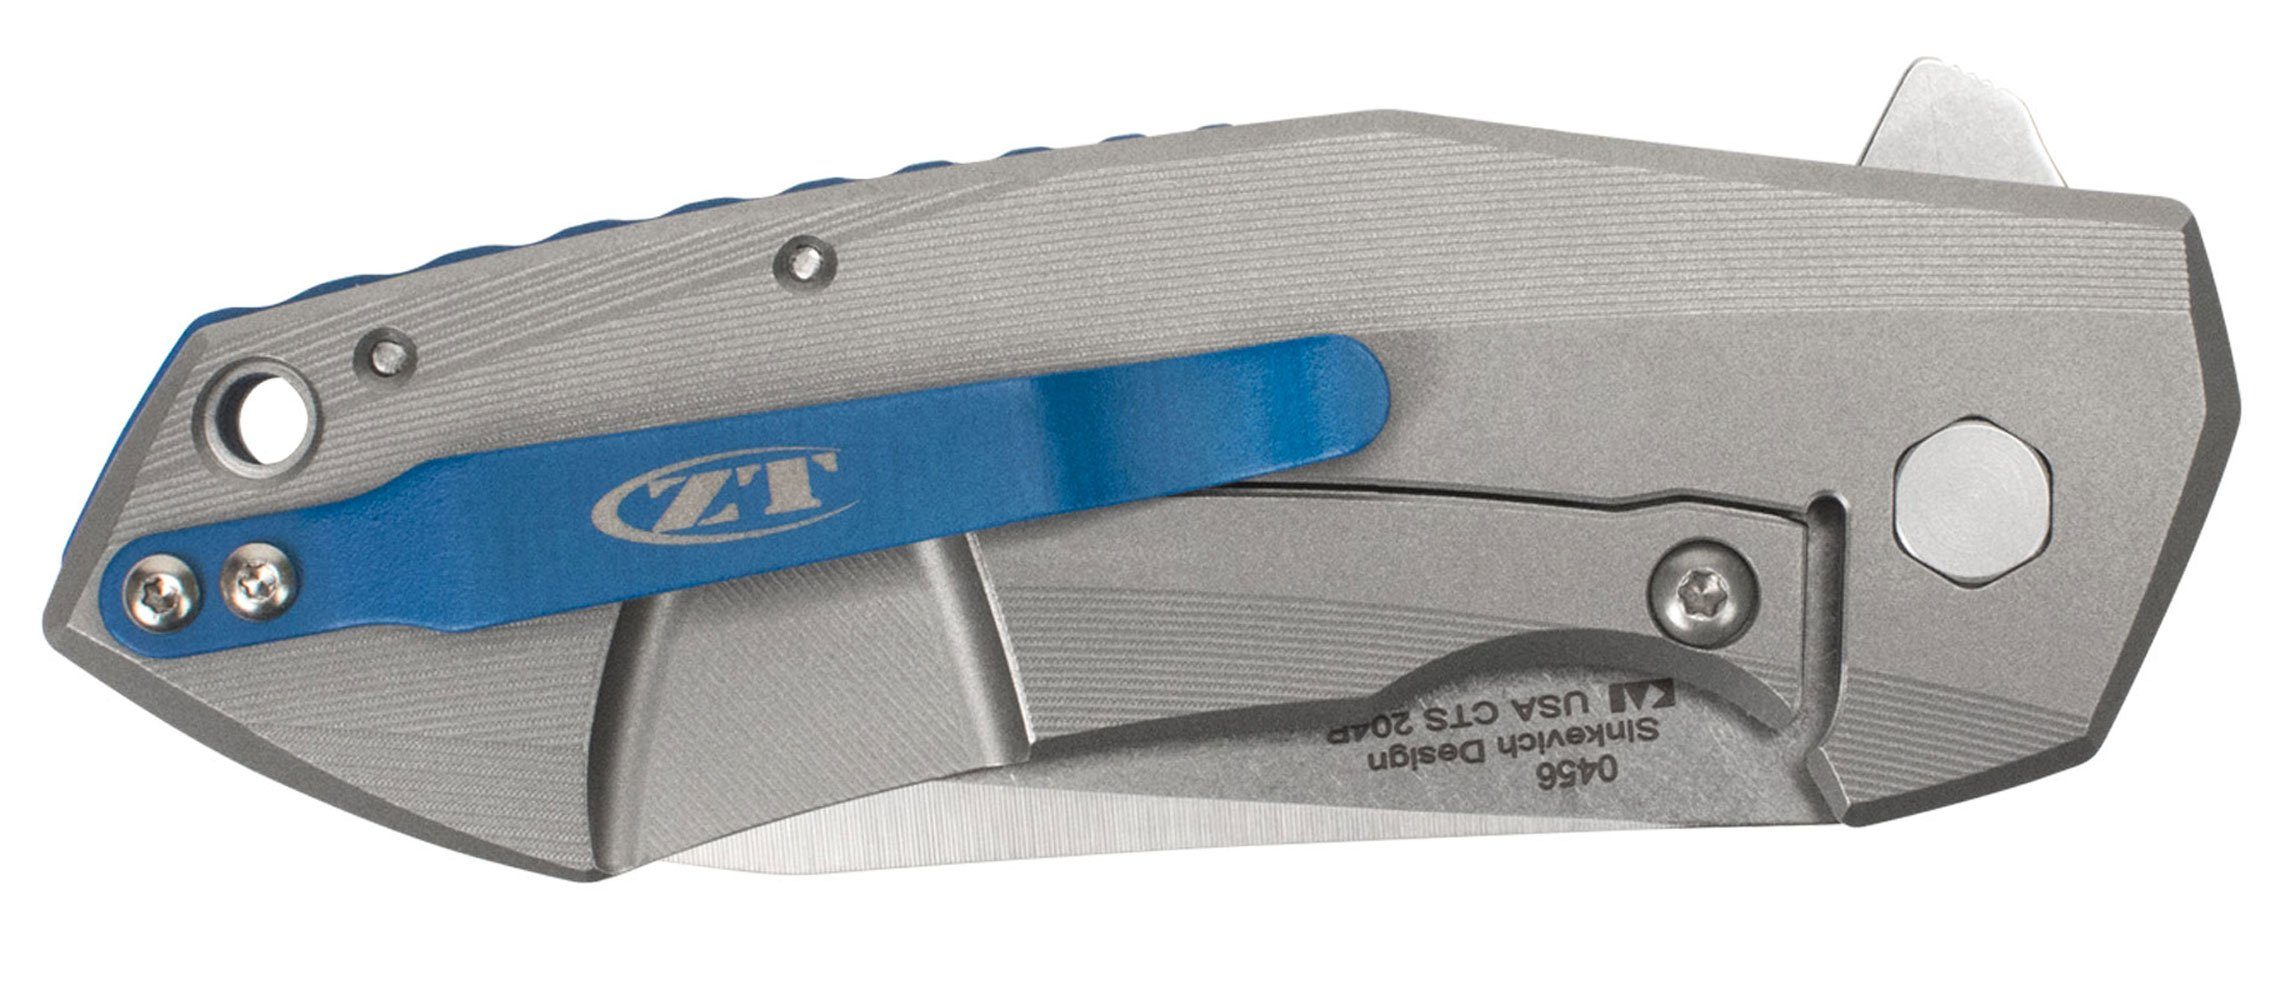 Zero Tolerance 0456 Sinkevich 3.25'' TI Knife, Silver by Zero Tolerance